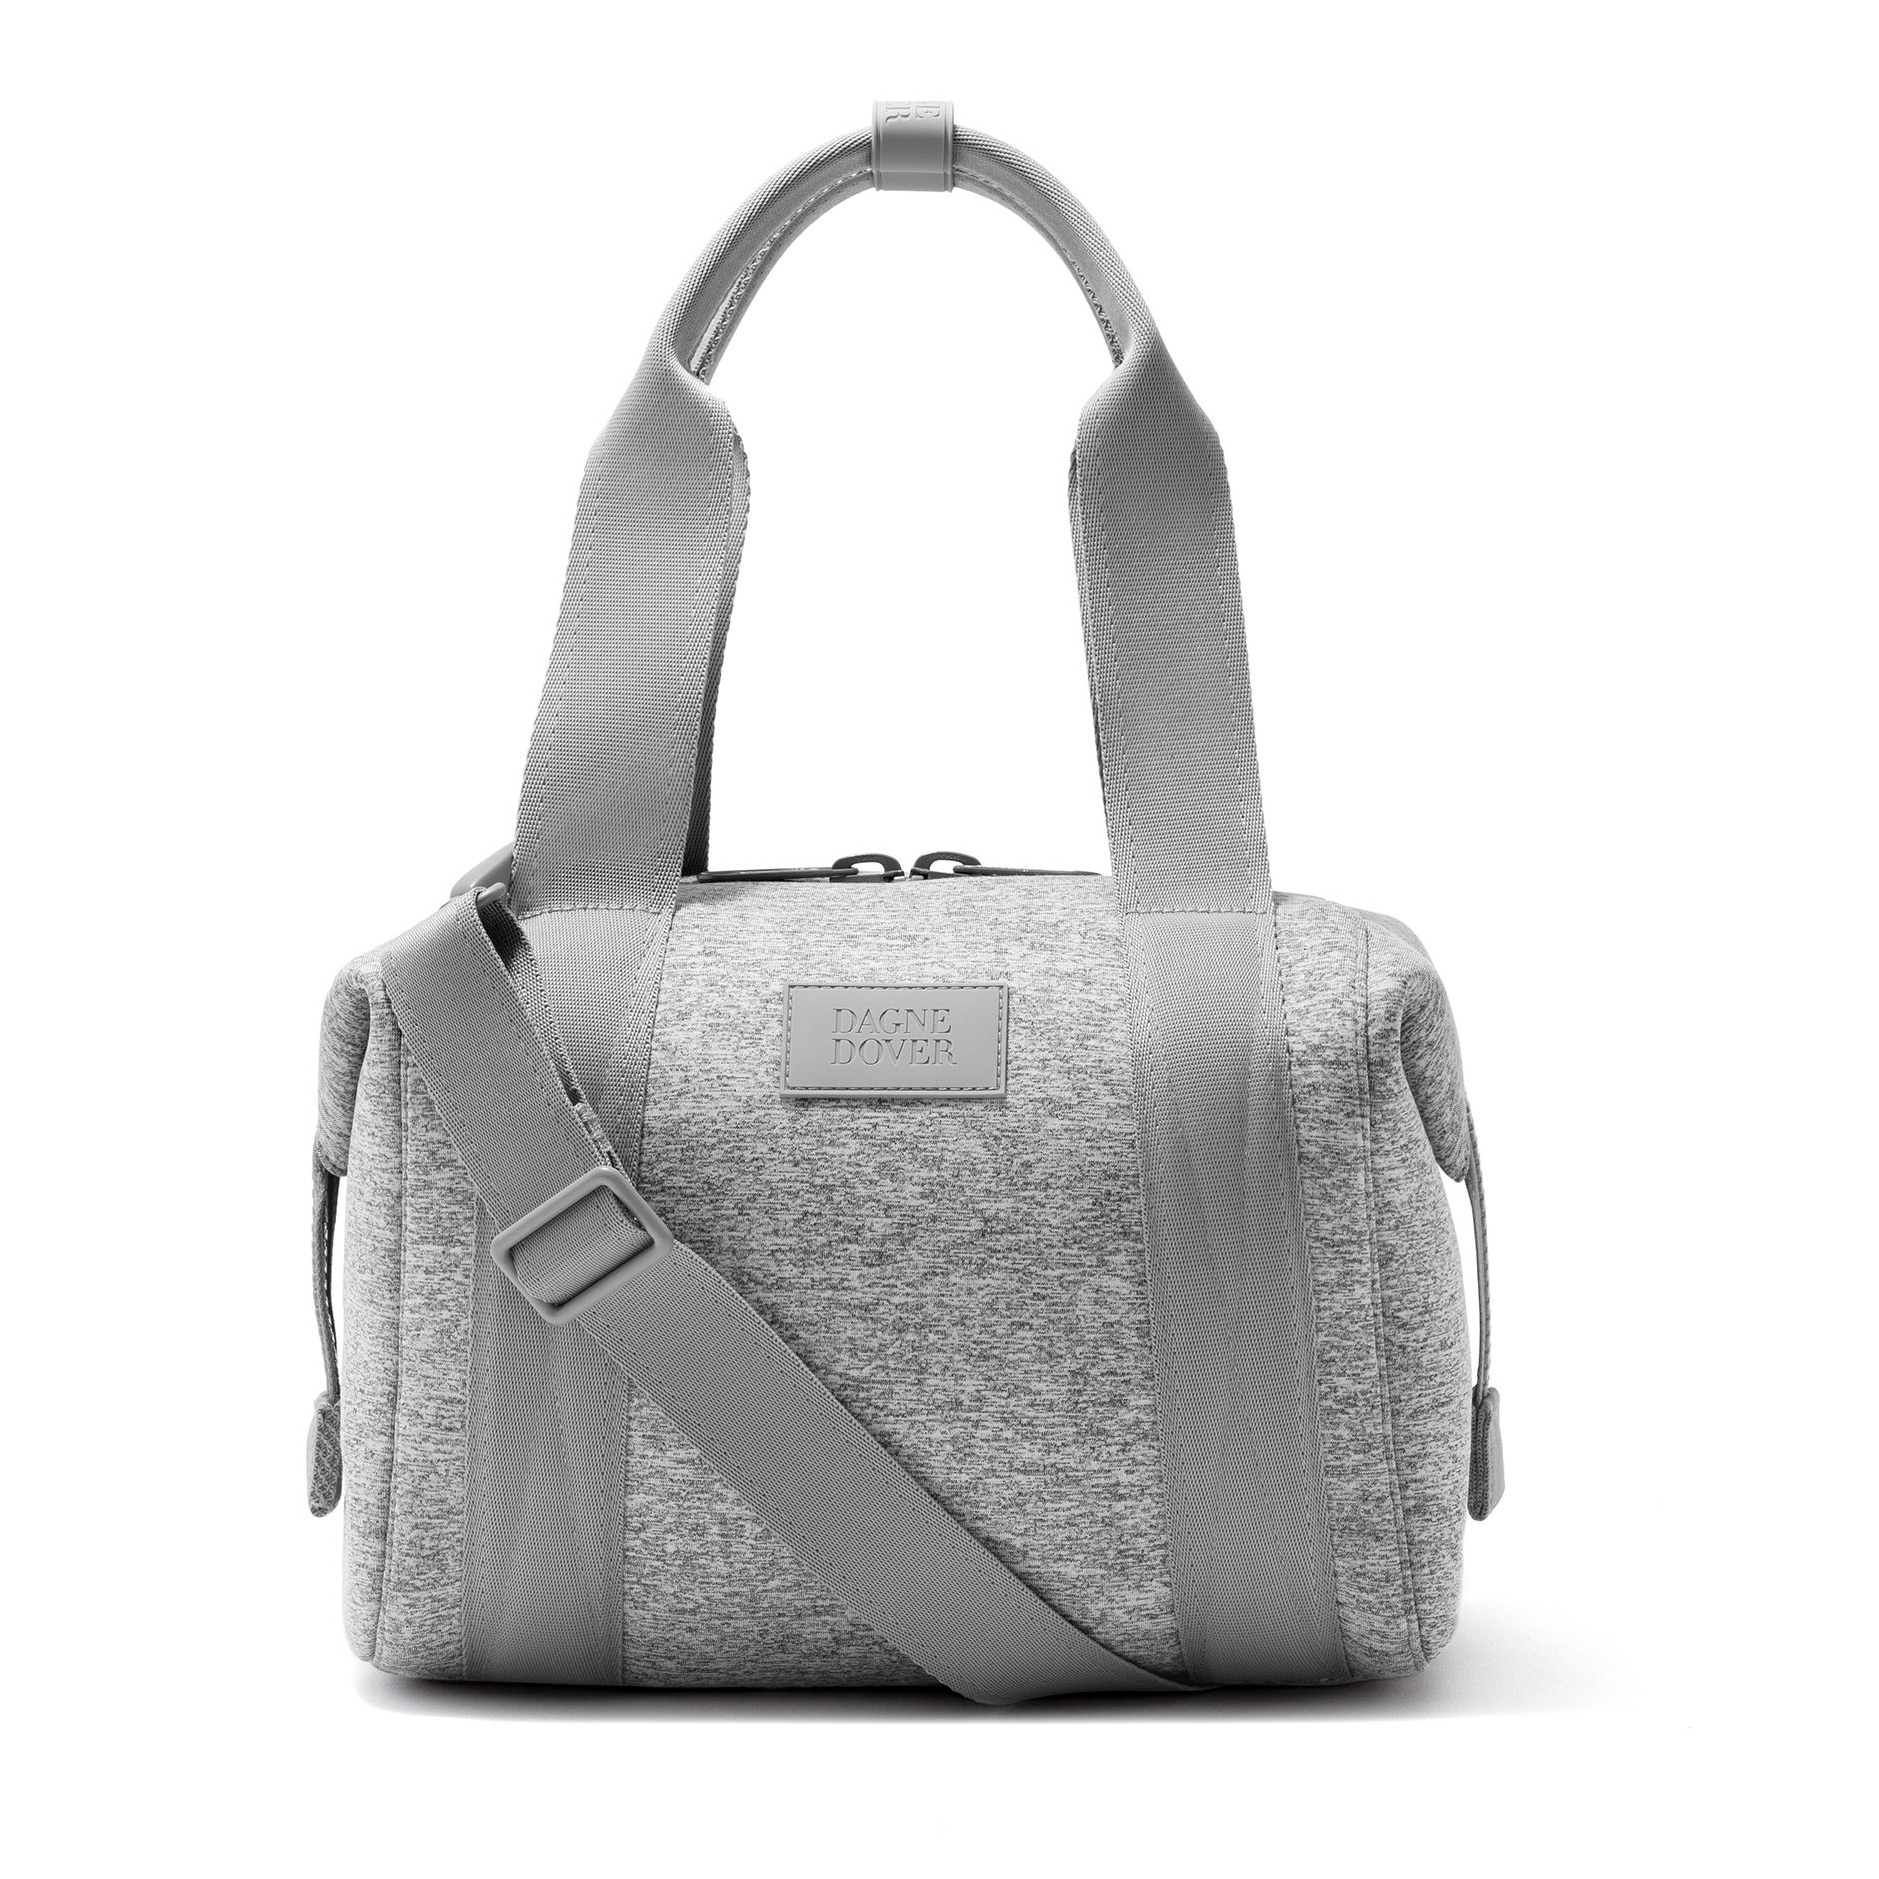 gray neoprene duffel bag by dagne dover